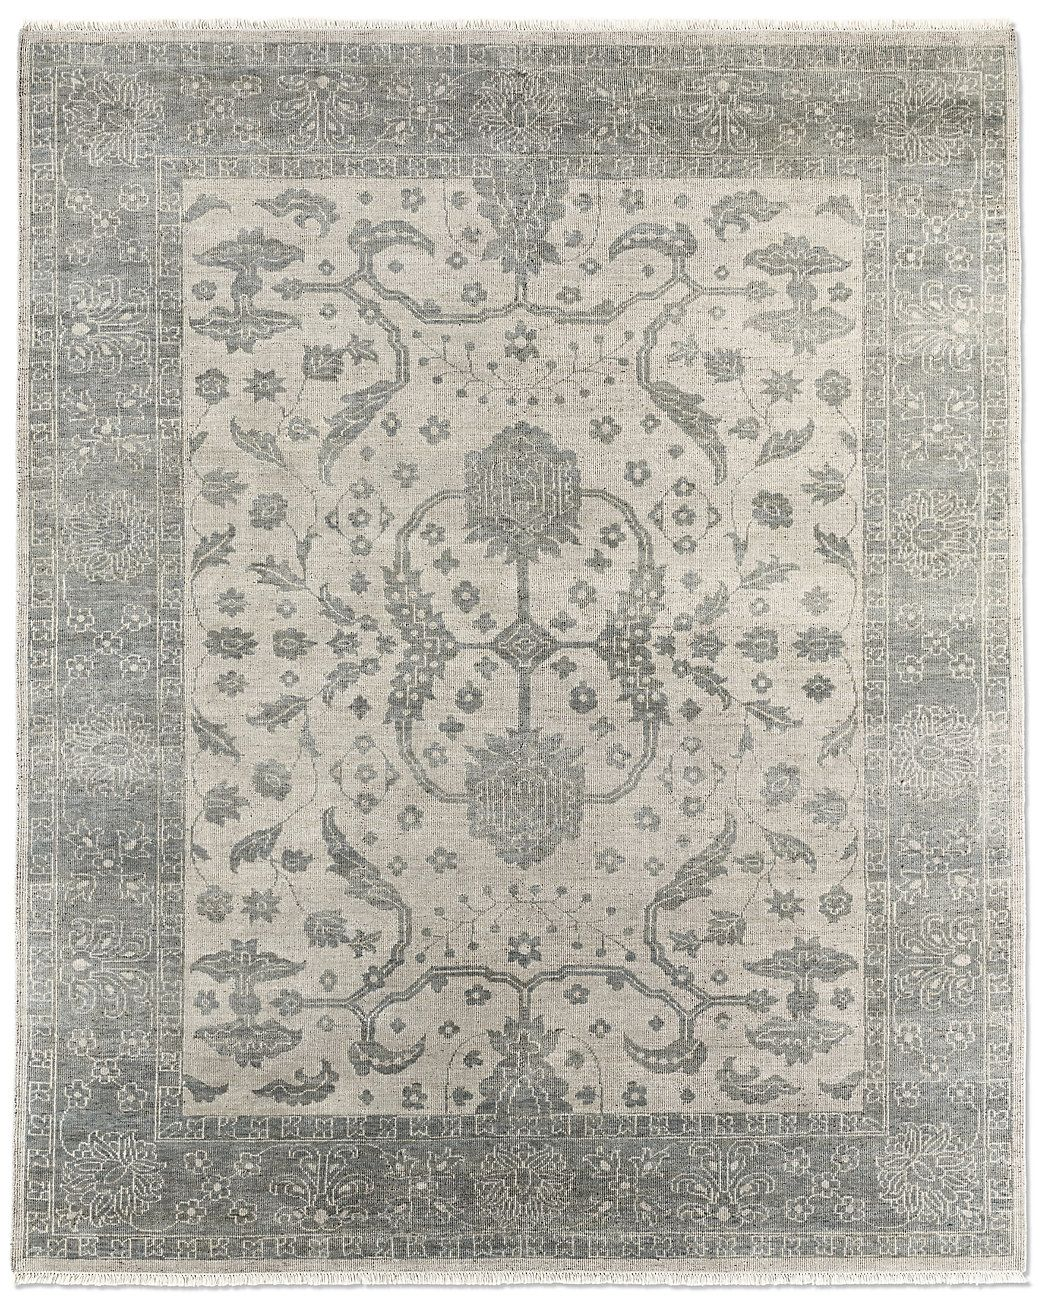 Restoration Hardware Has Some Huge Rugs In Silvery Colors 12 X15